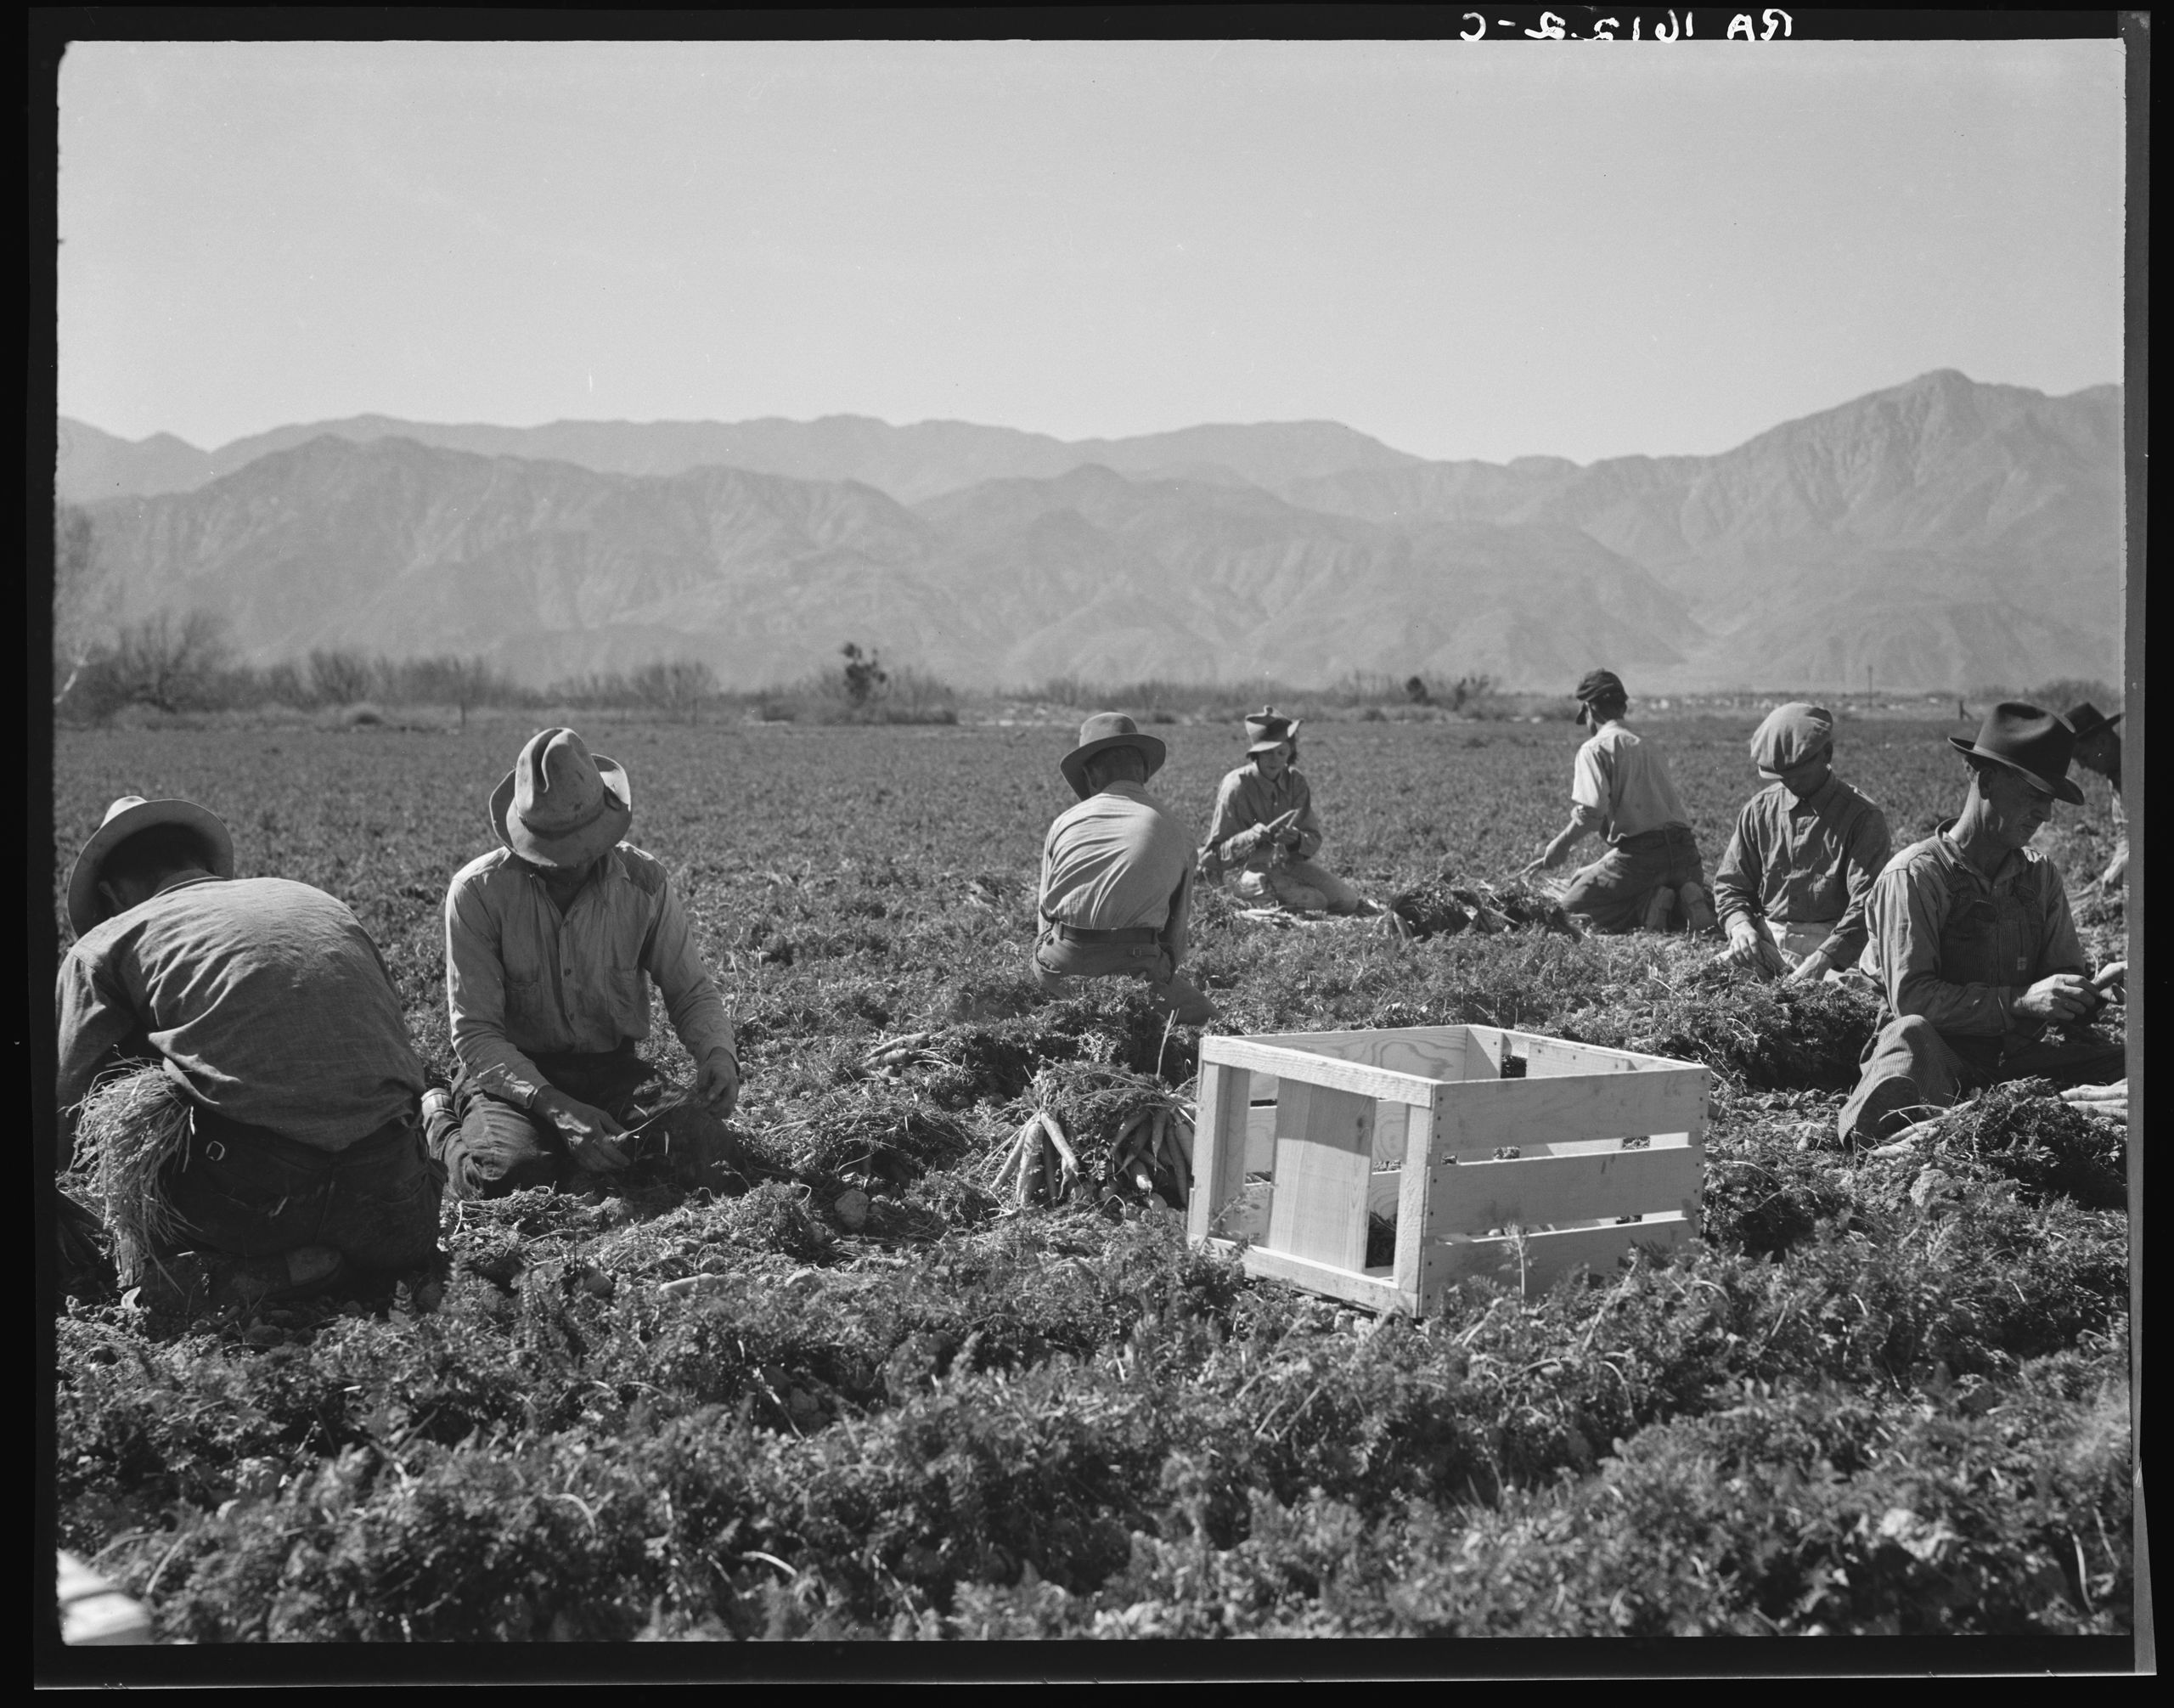 Black and white historical photo of men picking carrots in a field in California in 1937